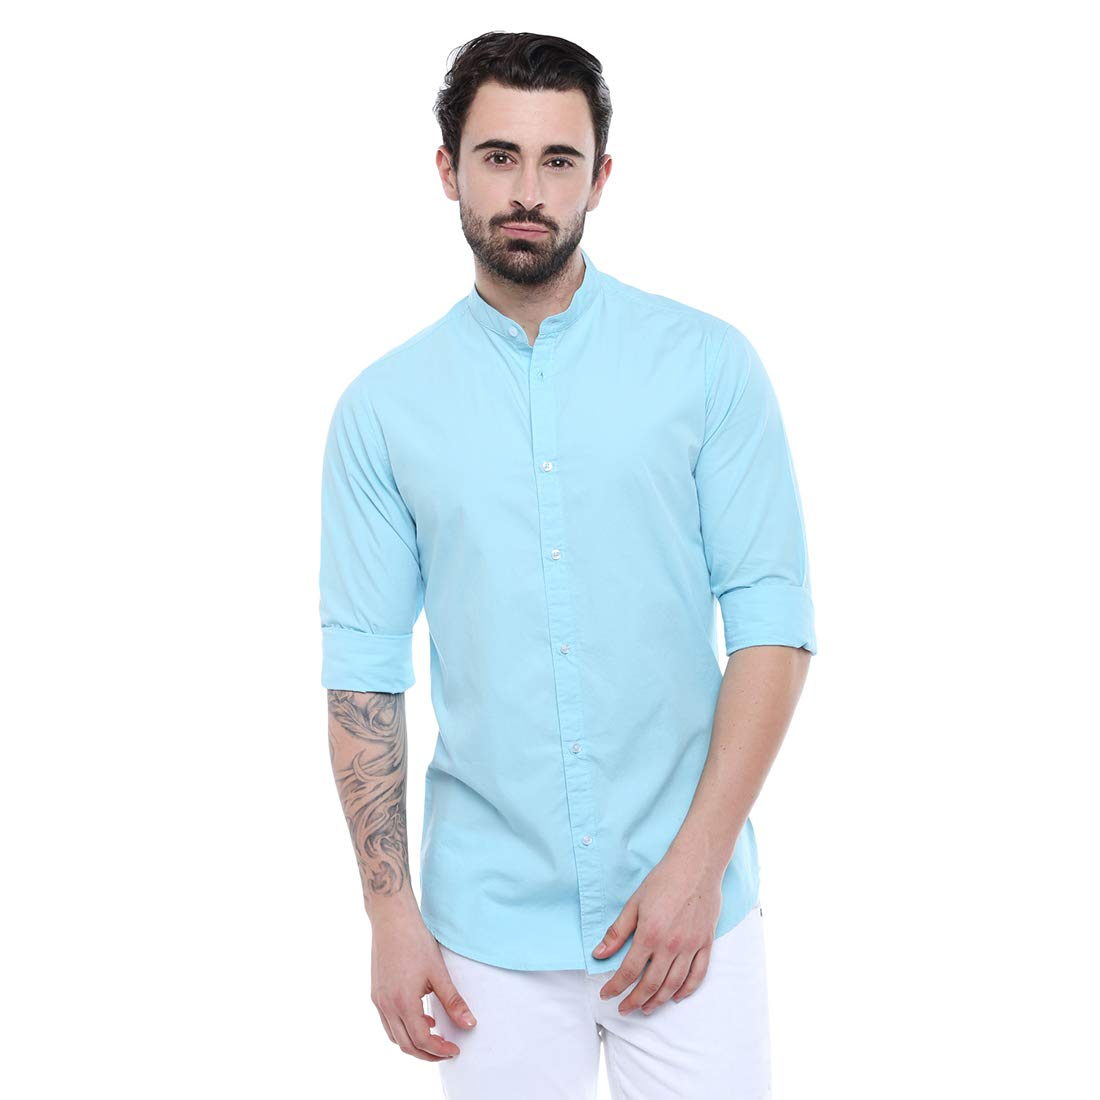 Dennis Lingo Men's Solid Chinese Collar Tblue Casual Shirt